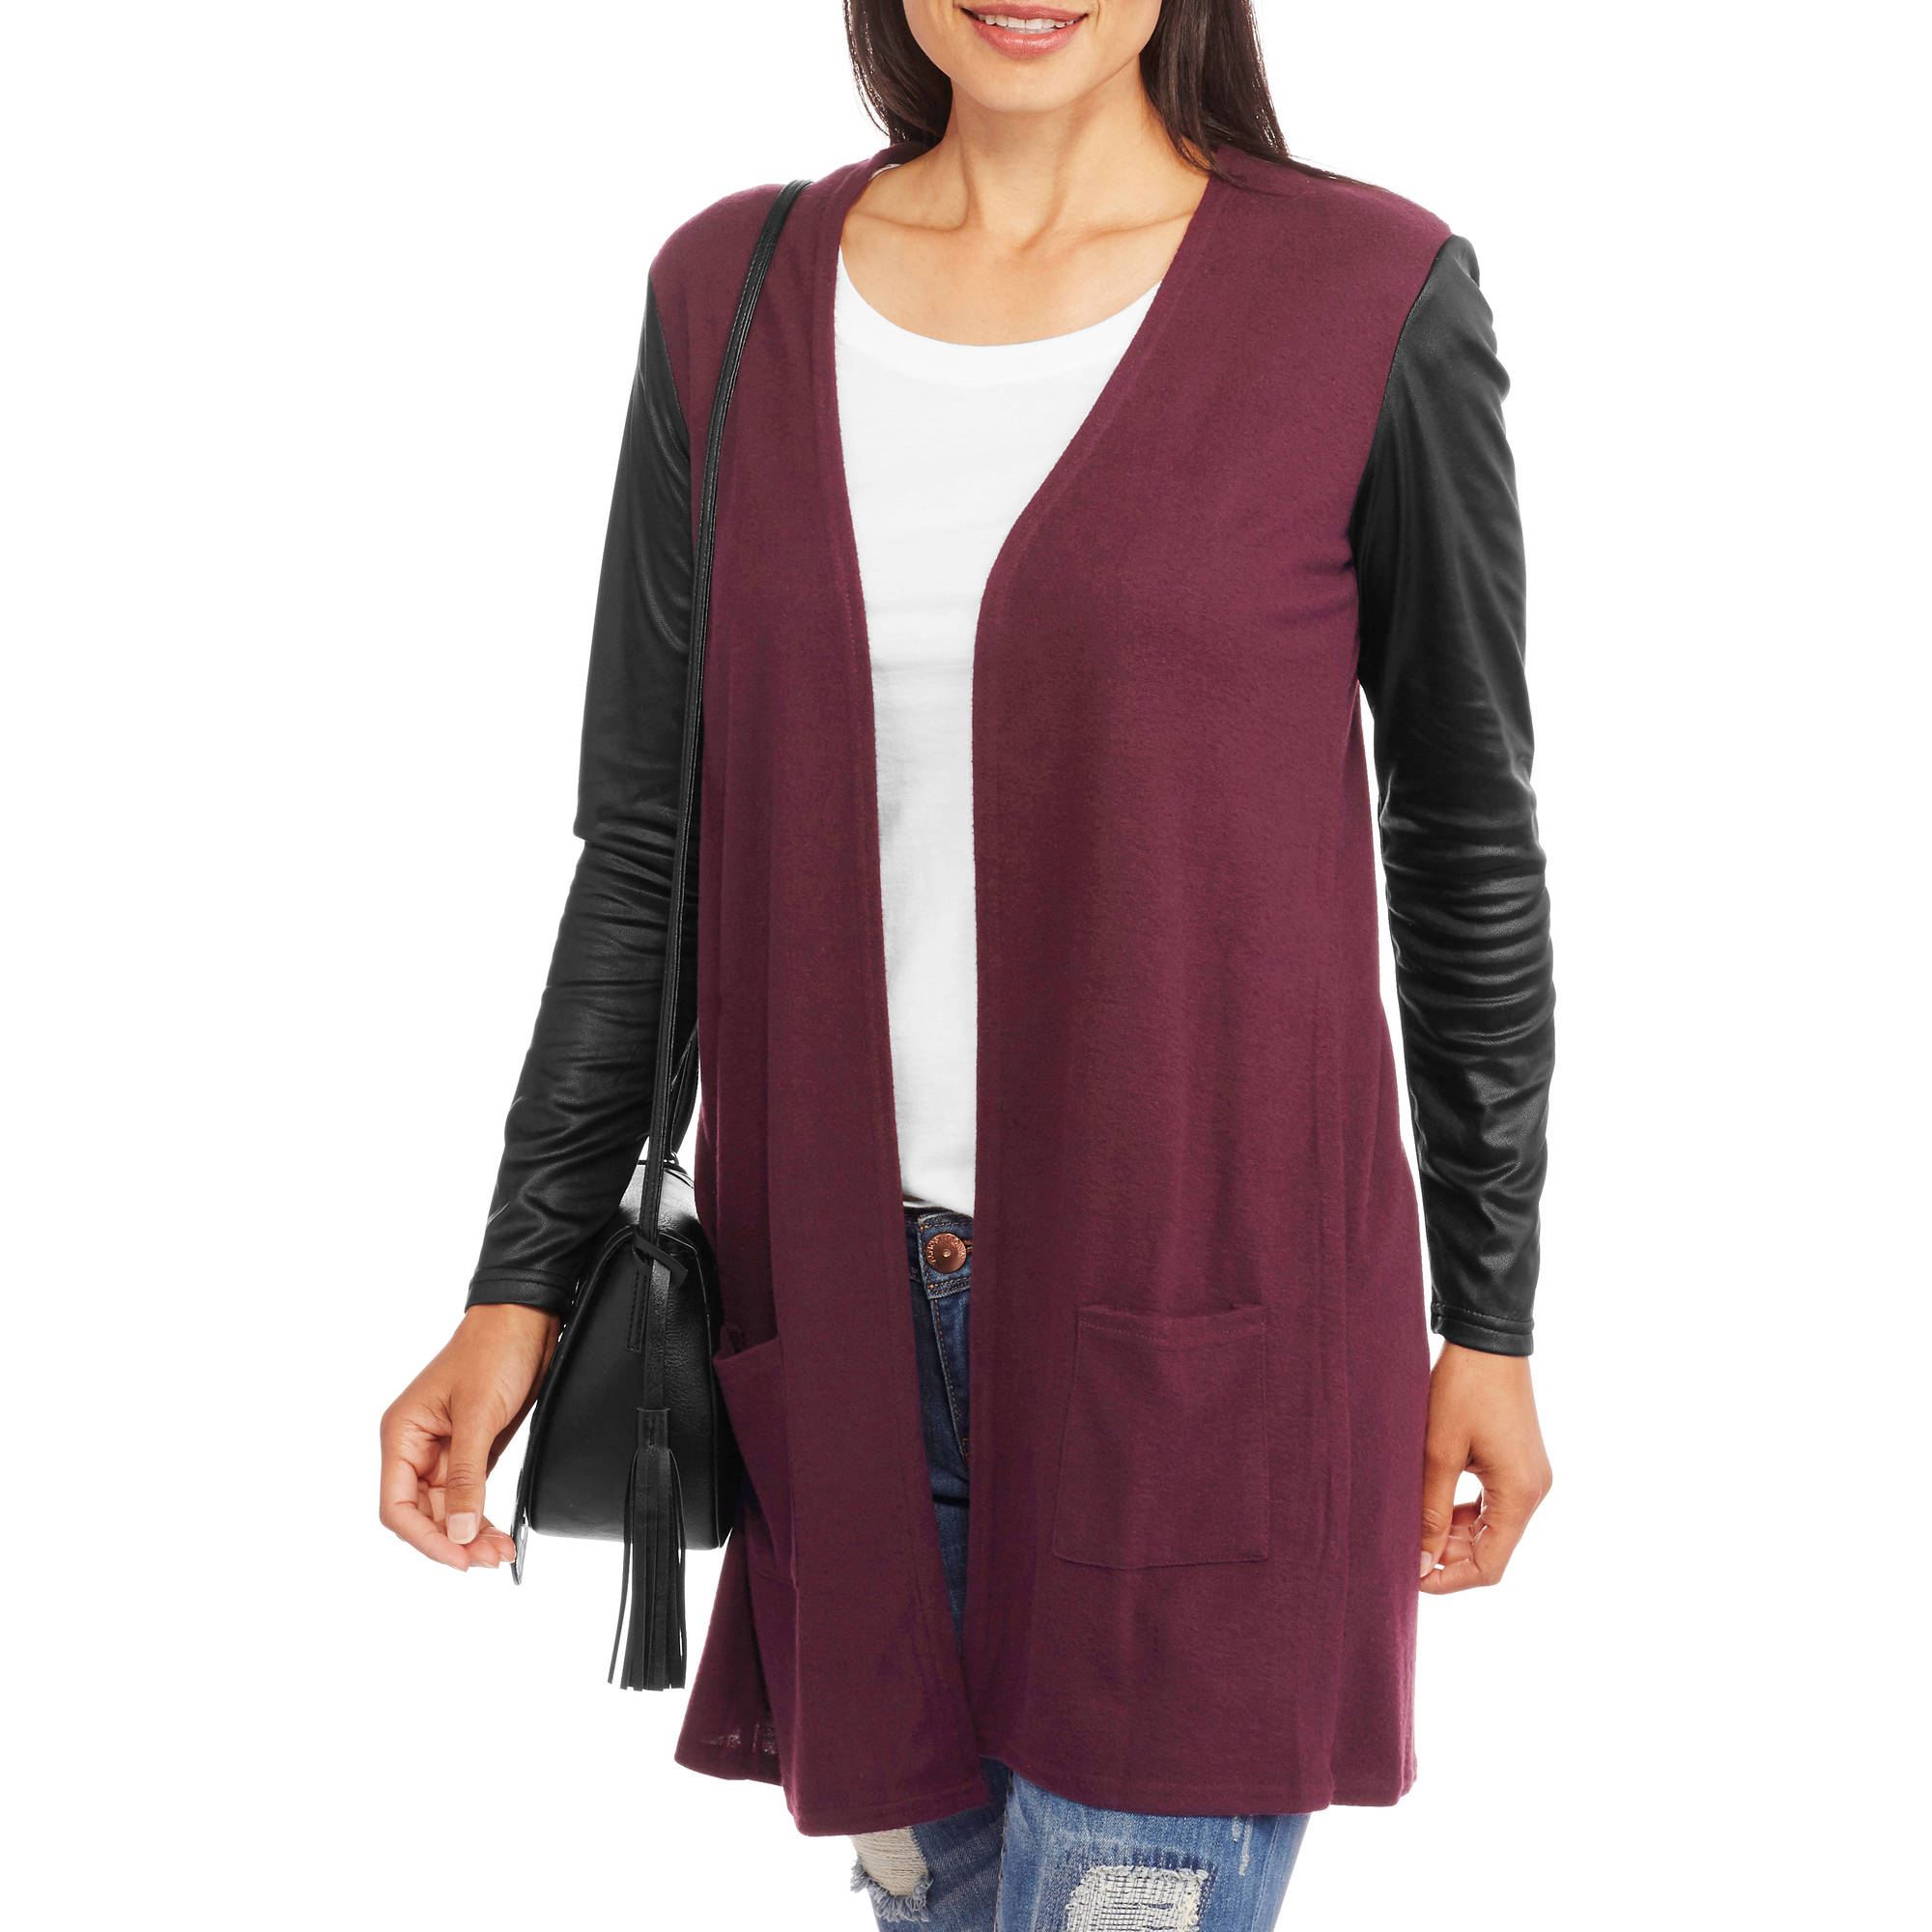 French Laundry Women's Super Soft Long Cardigan